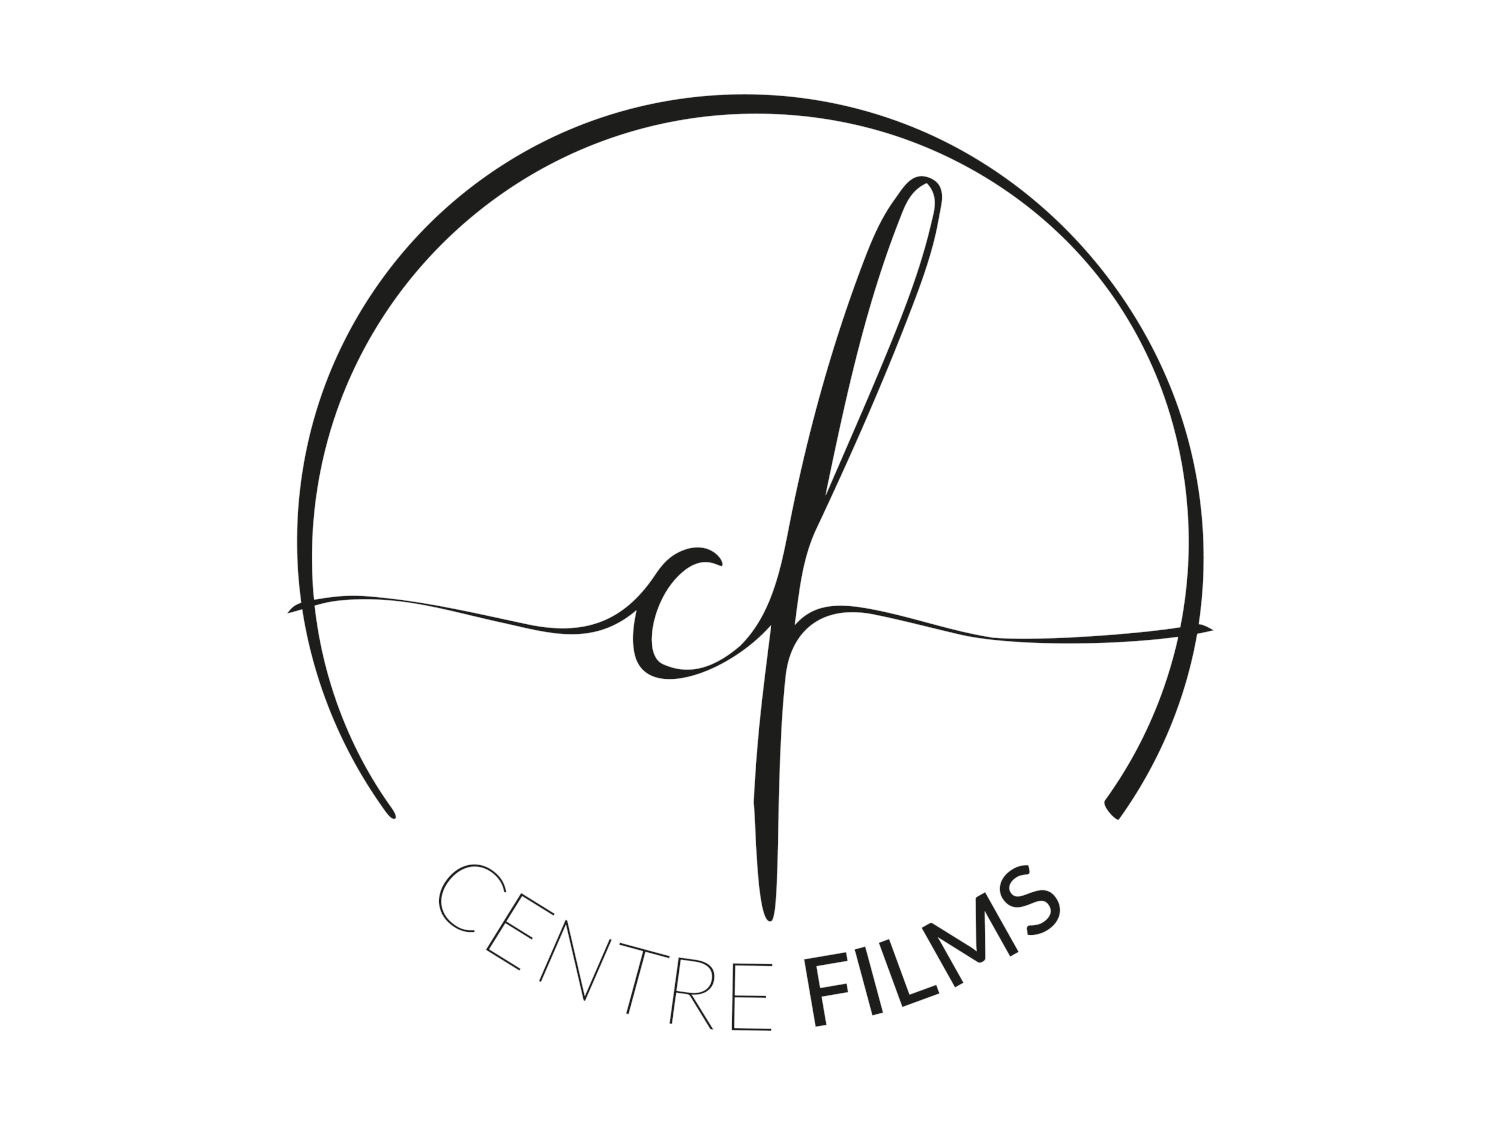 Logo Centre Films